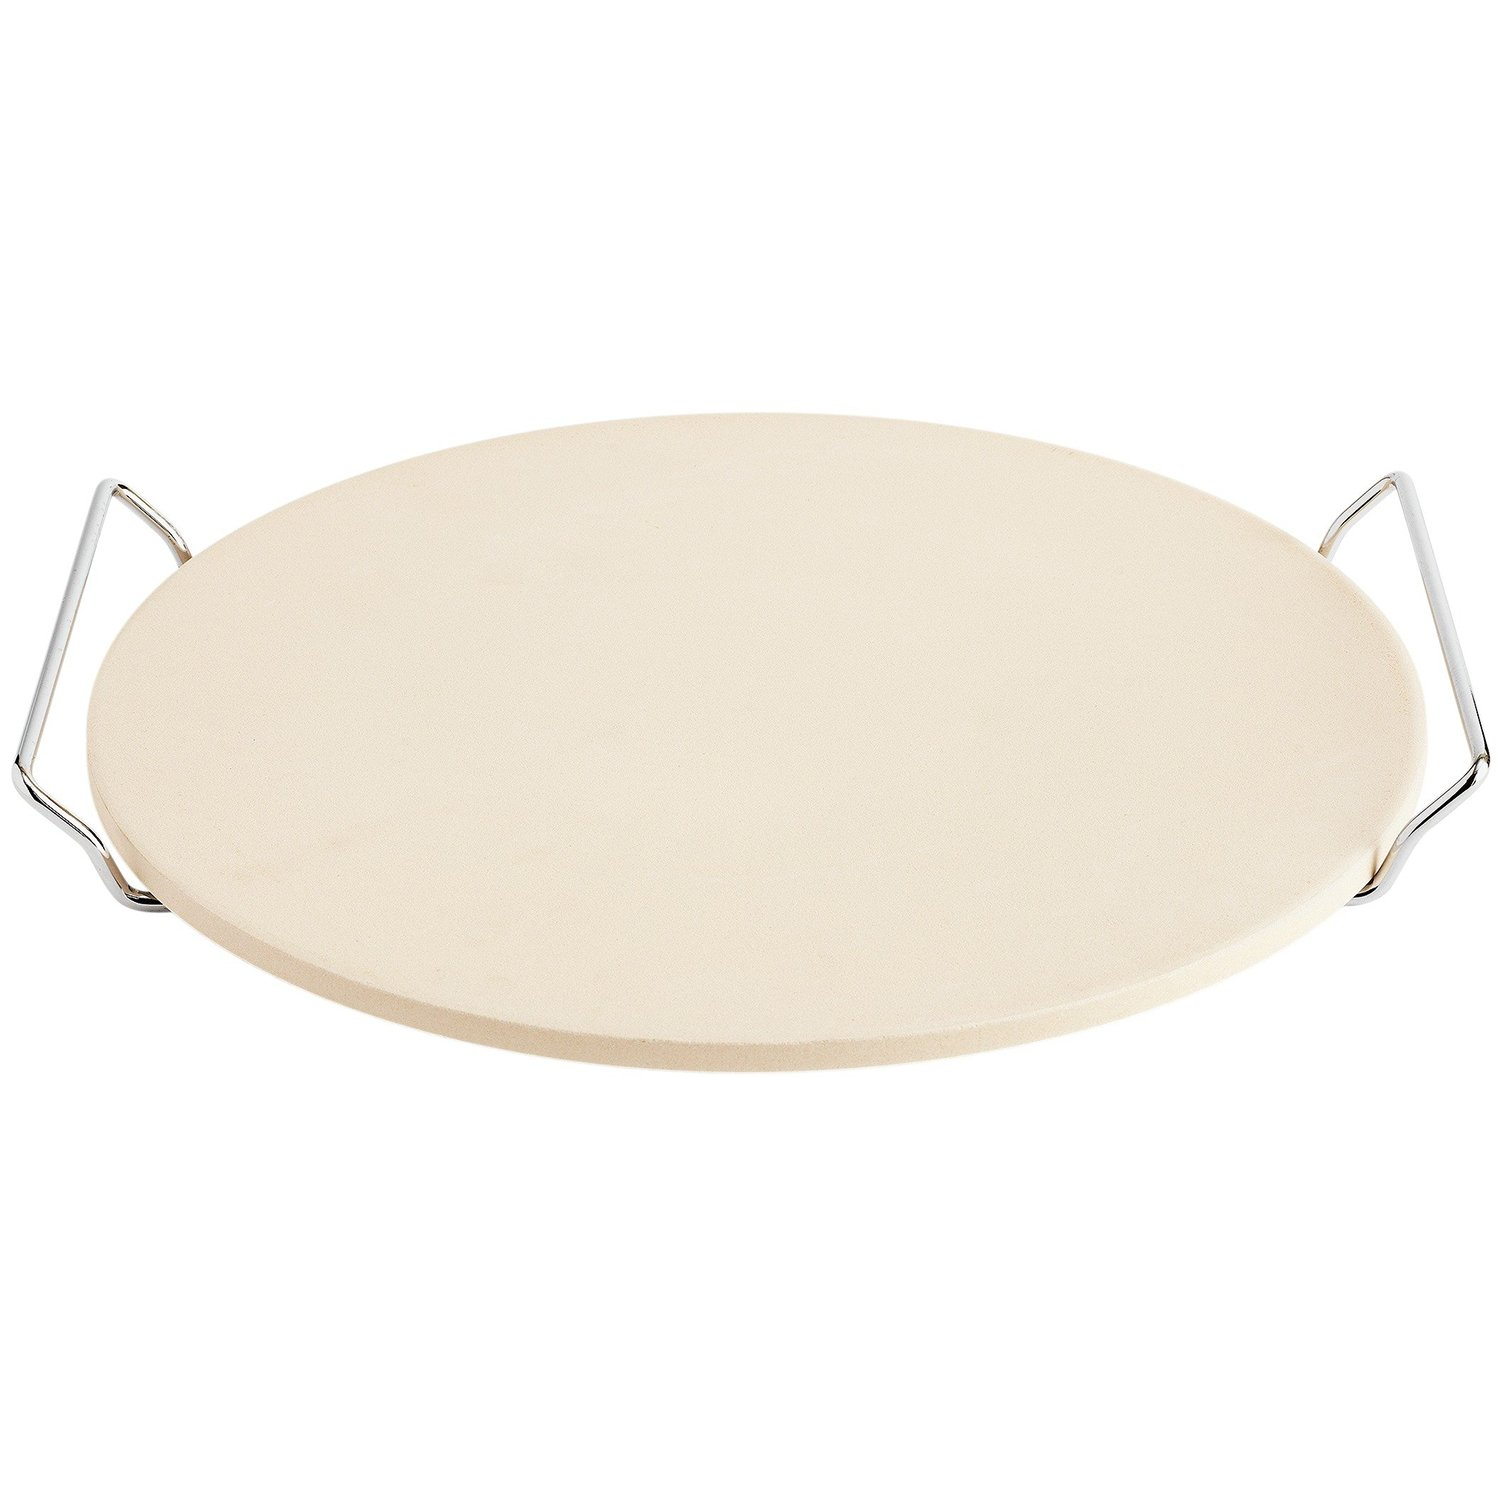 Jamie Oliver Keep It Simple Pizza Stone and Serving Rack DKB Household UK Ltd JC5120